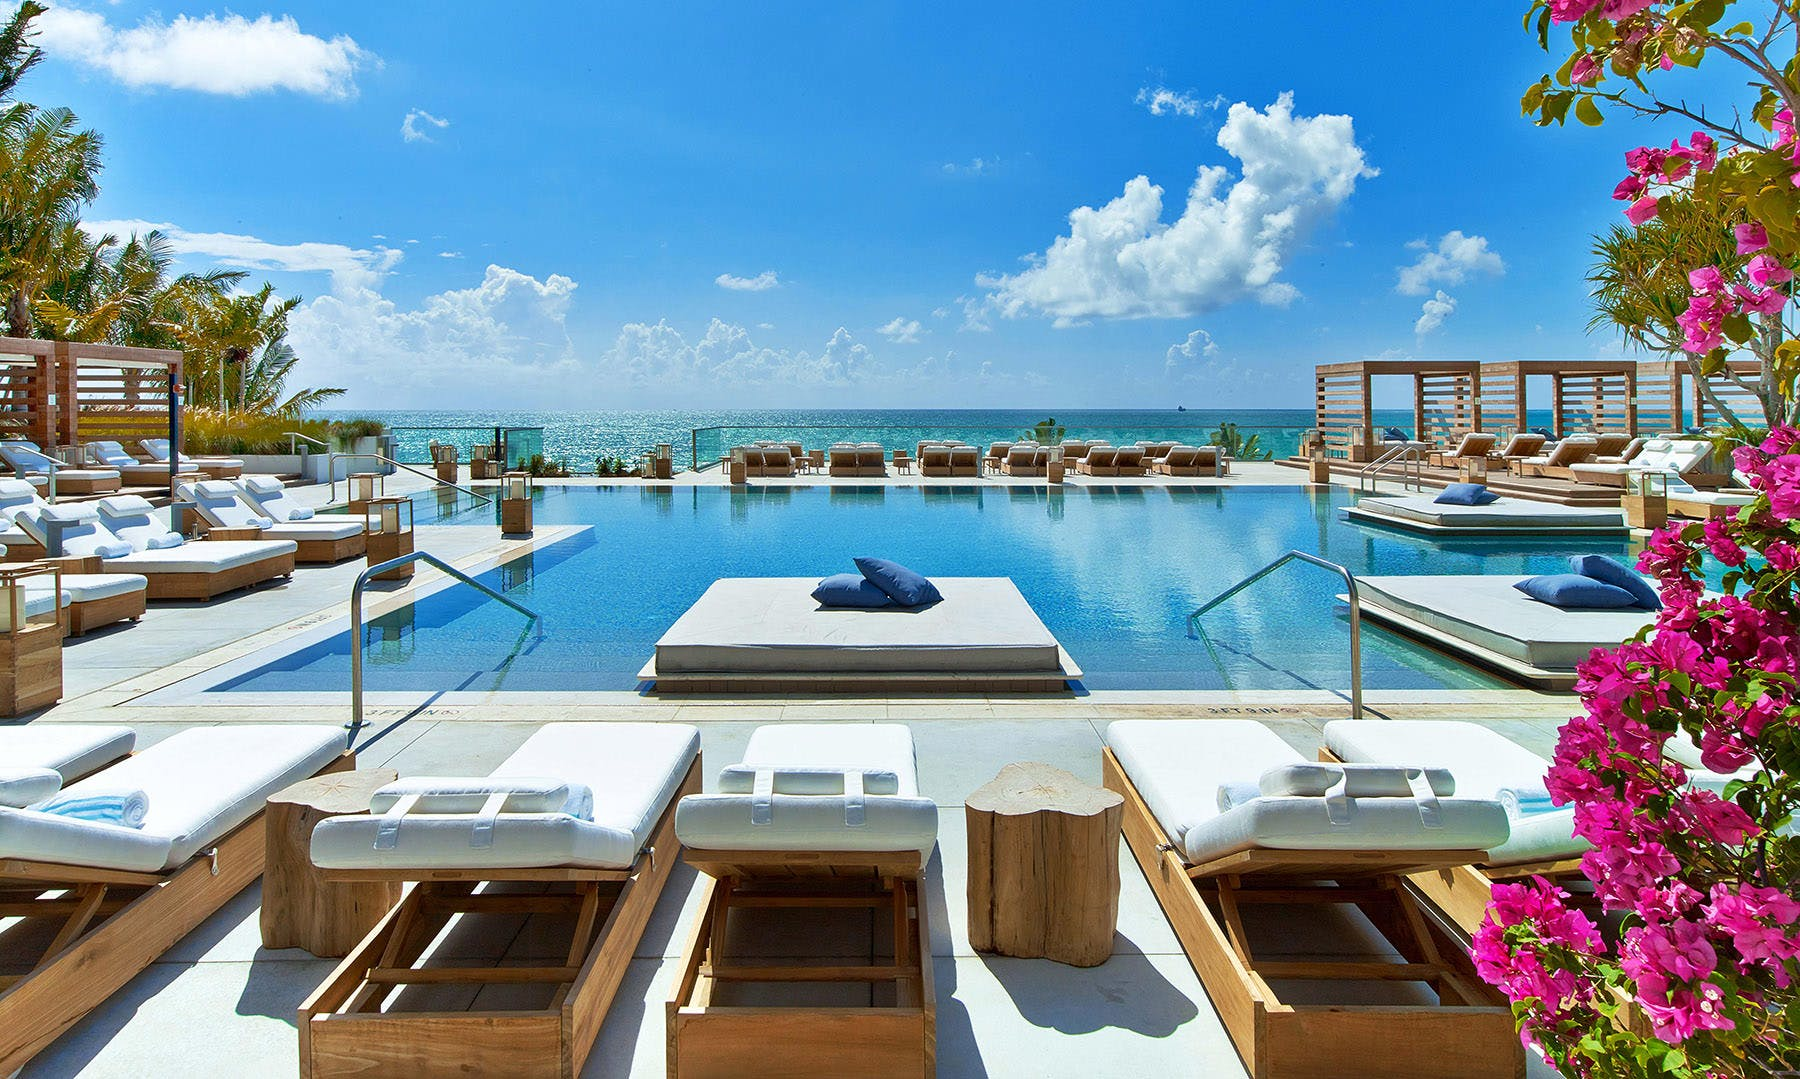 z ocean south beach luxury boutique hotel miami beach - HD 1200×800